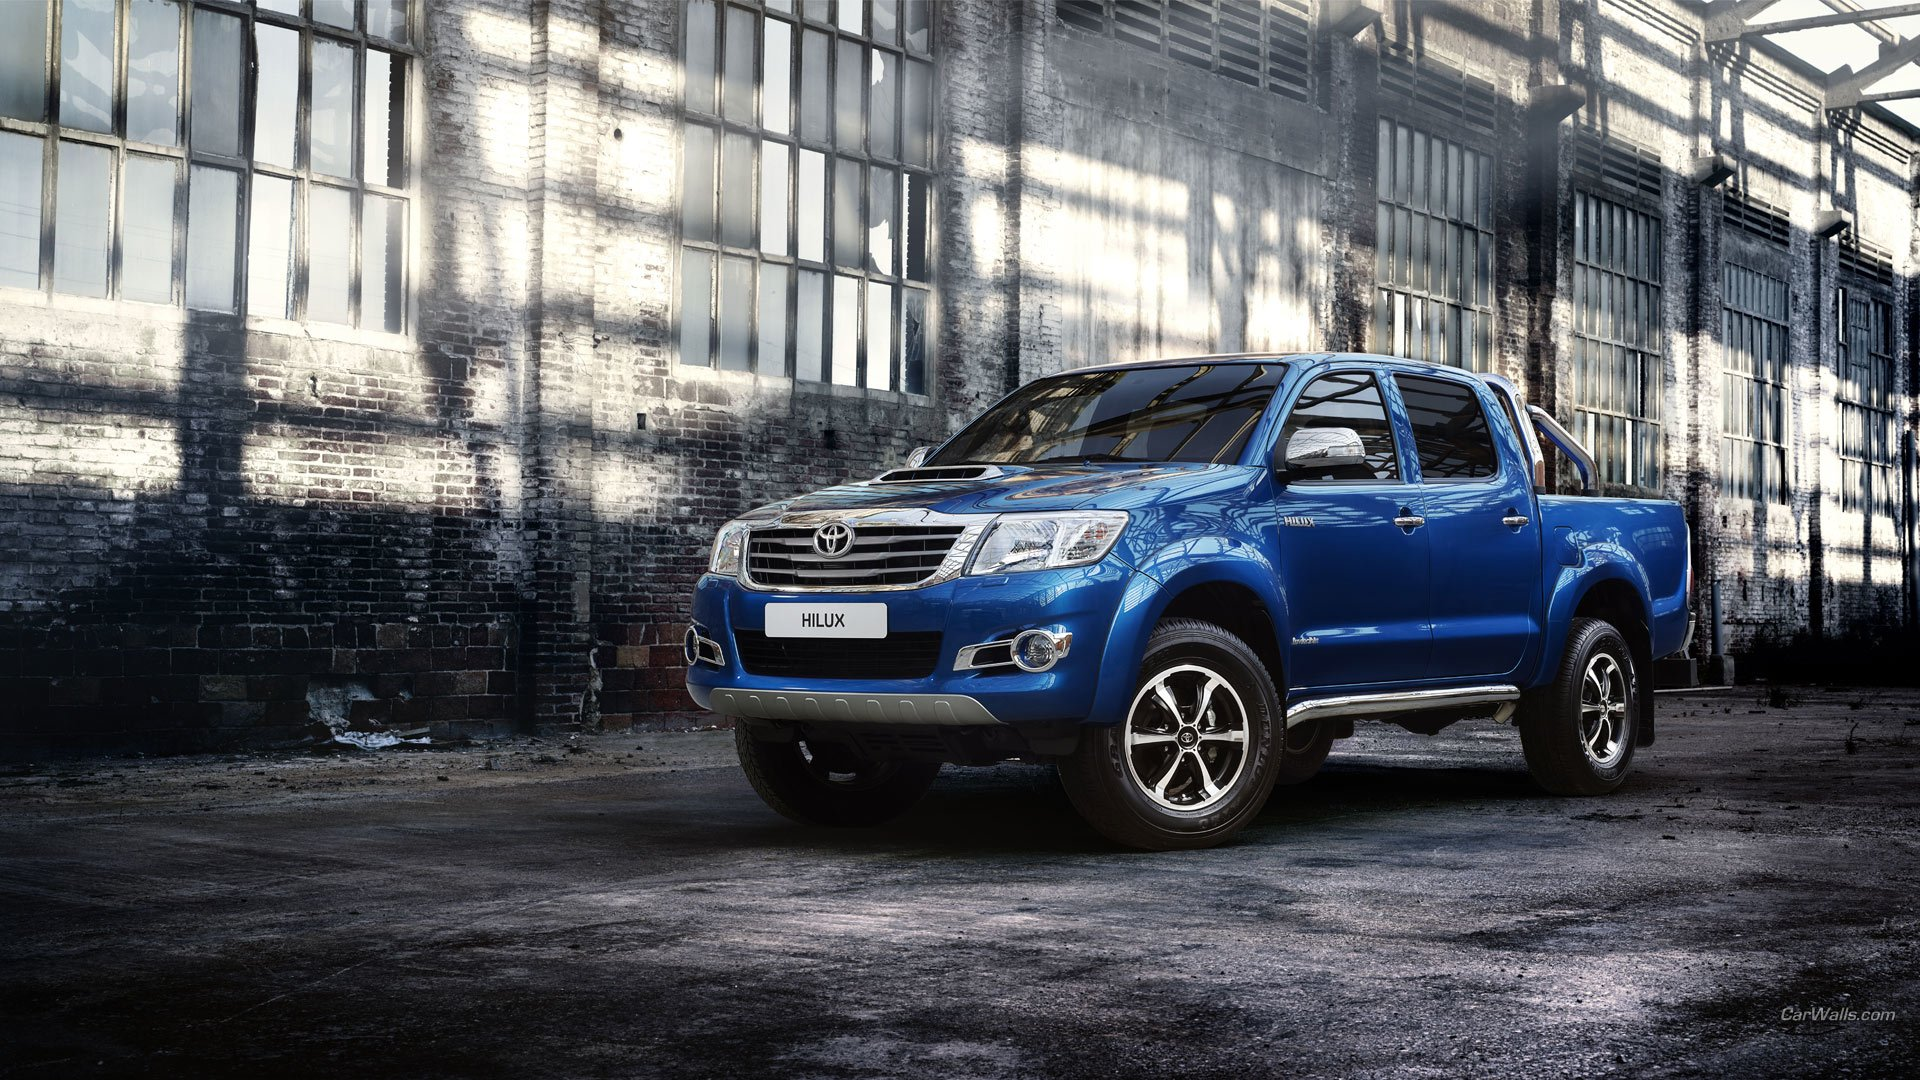 14 Toyota Hilux Hd Wallpapers Background Images Wallpaper Abyss